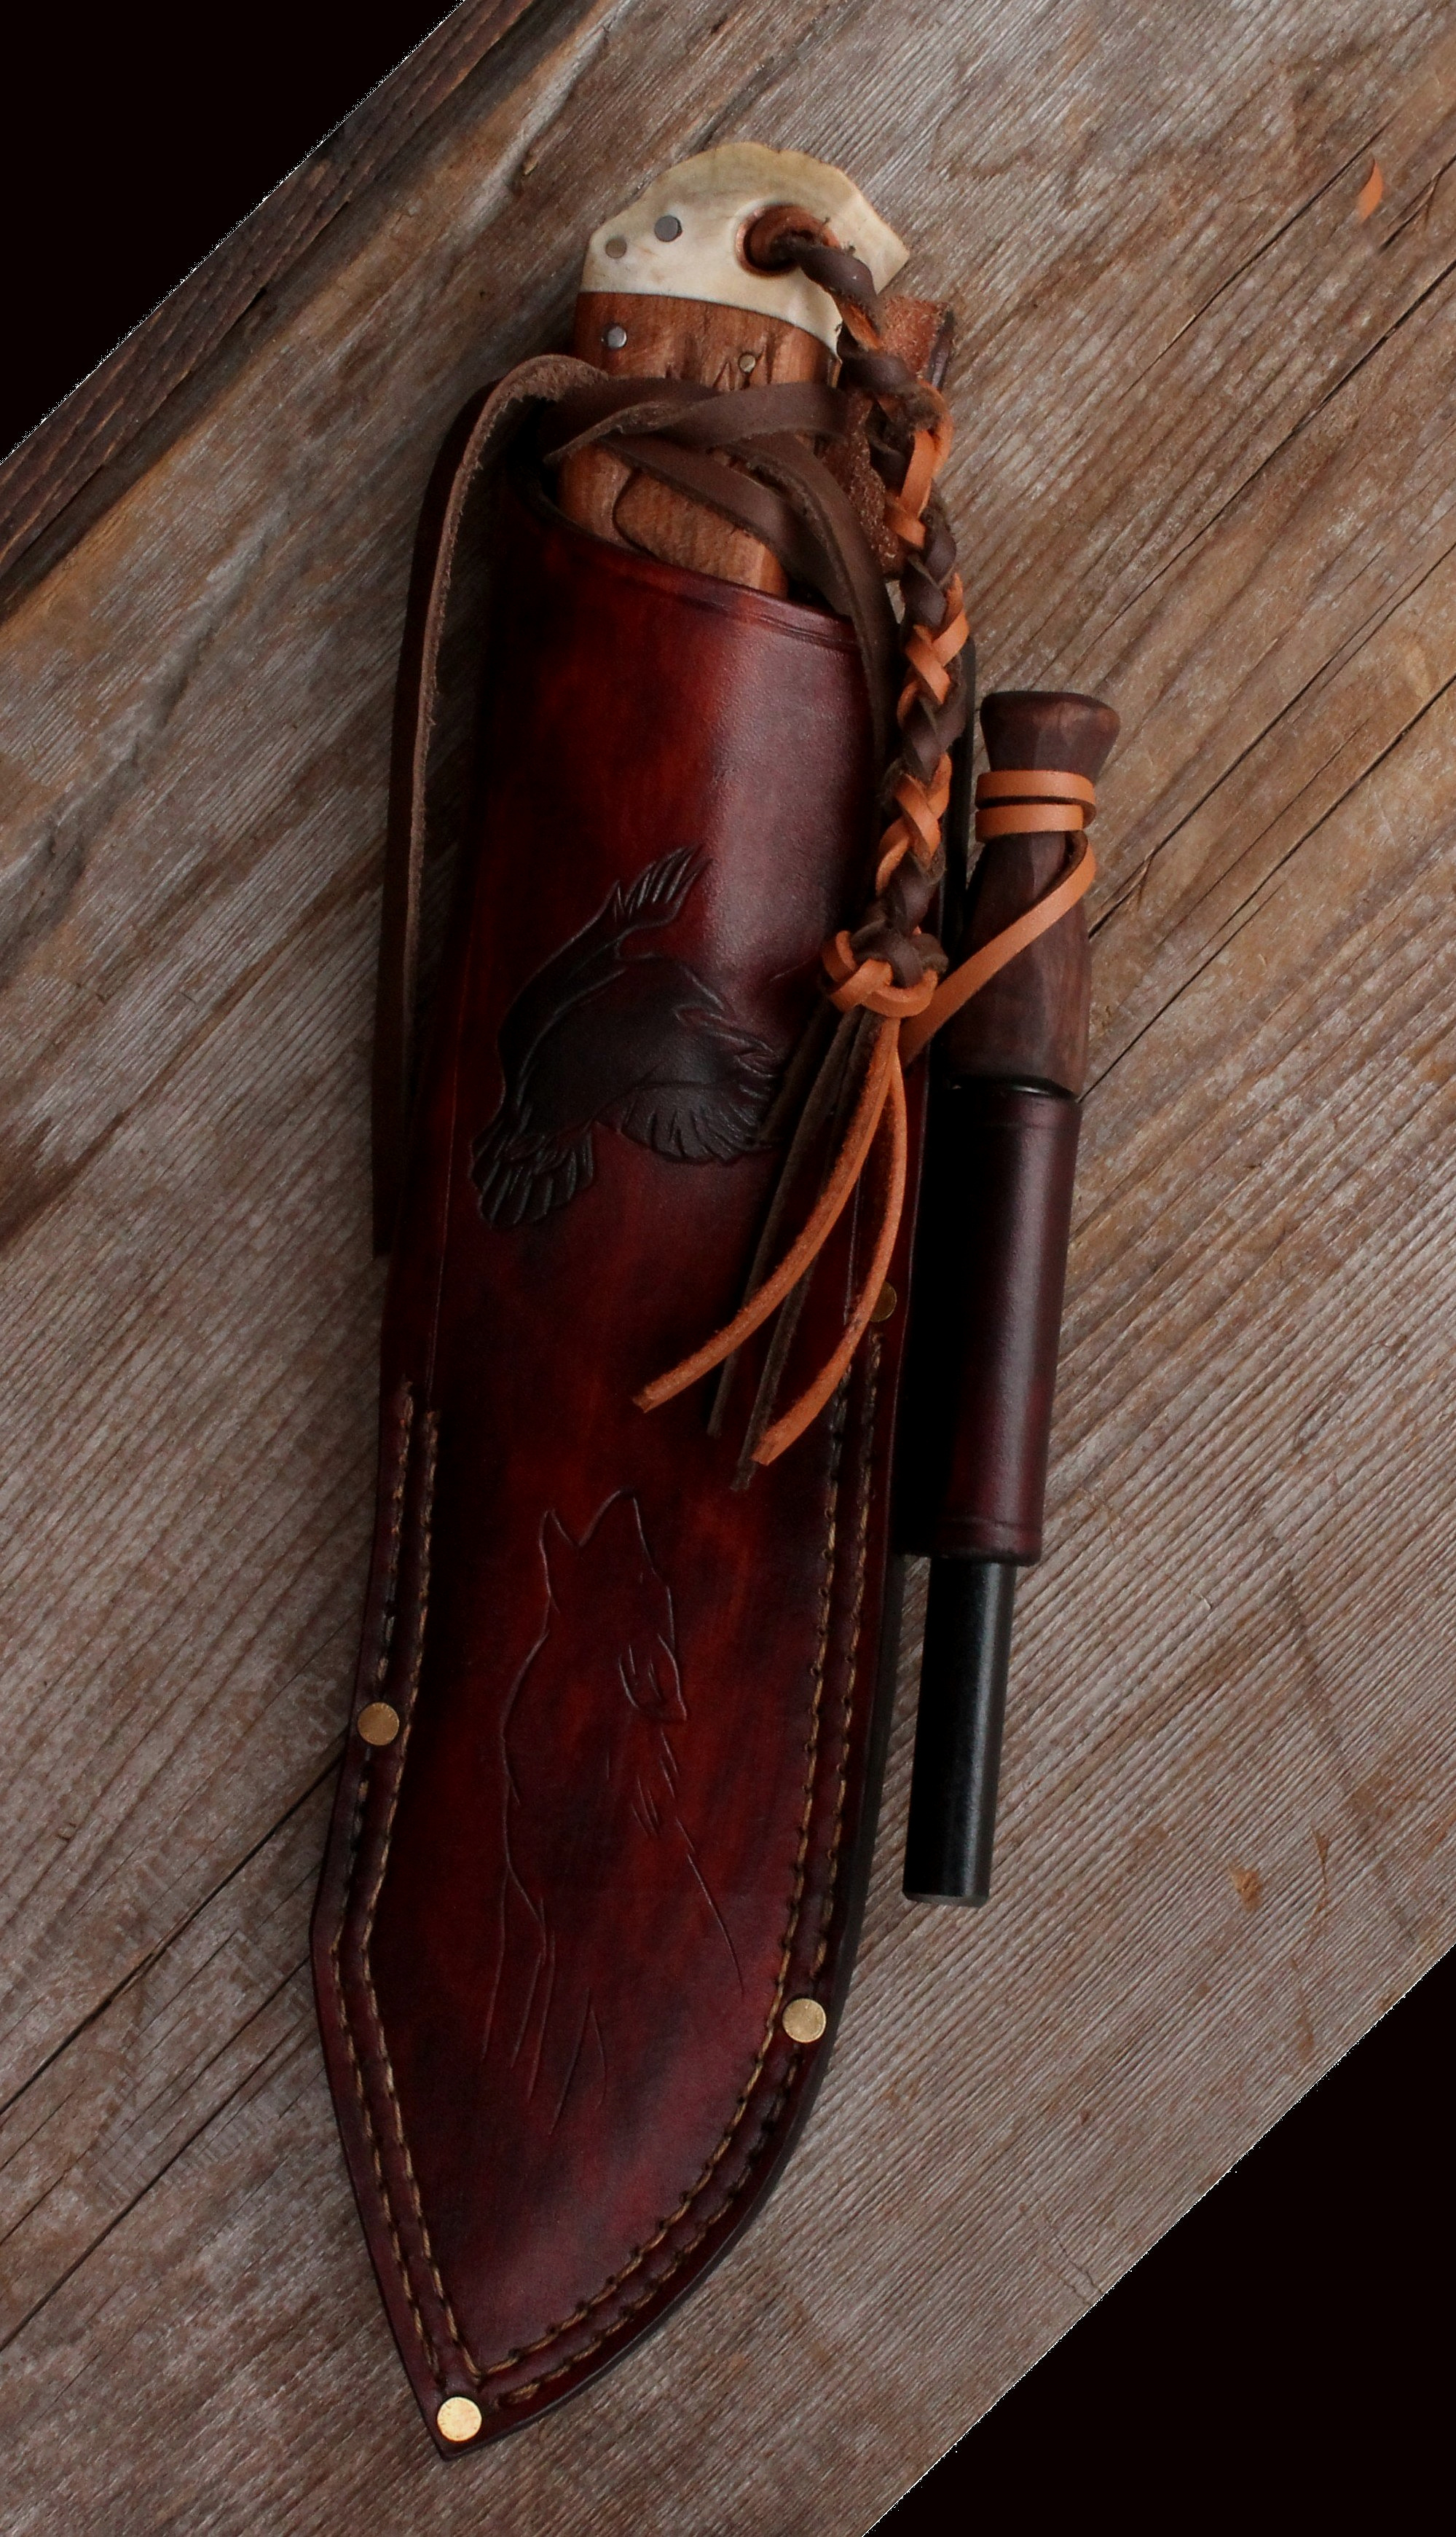 Custom made bushcraft knife sheath. Wolf and Raven knife set.